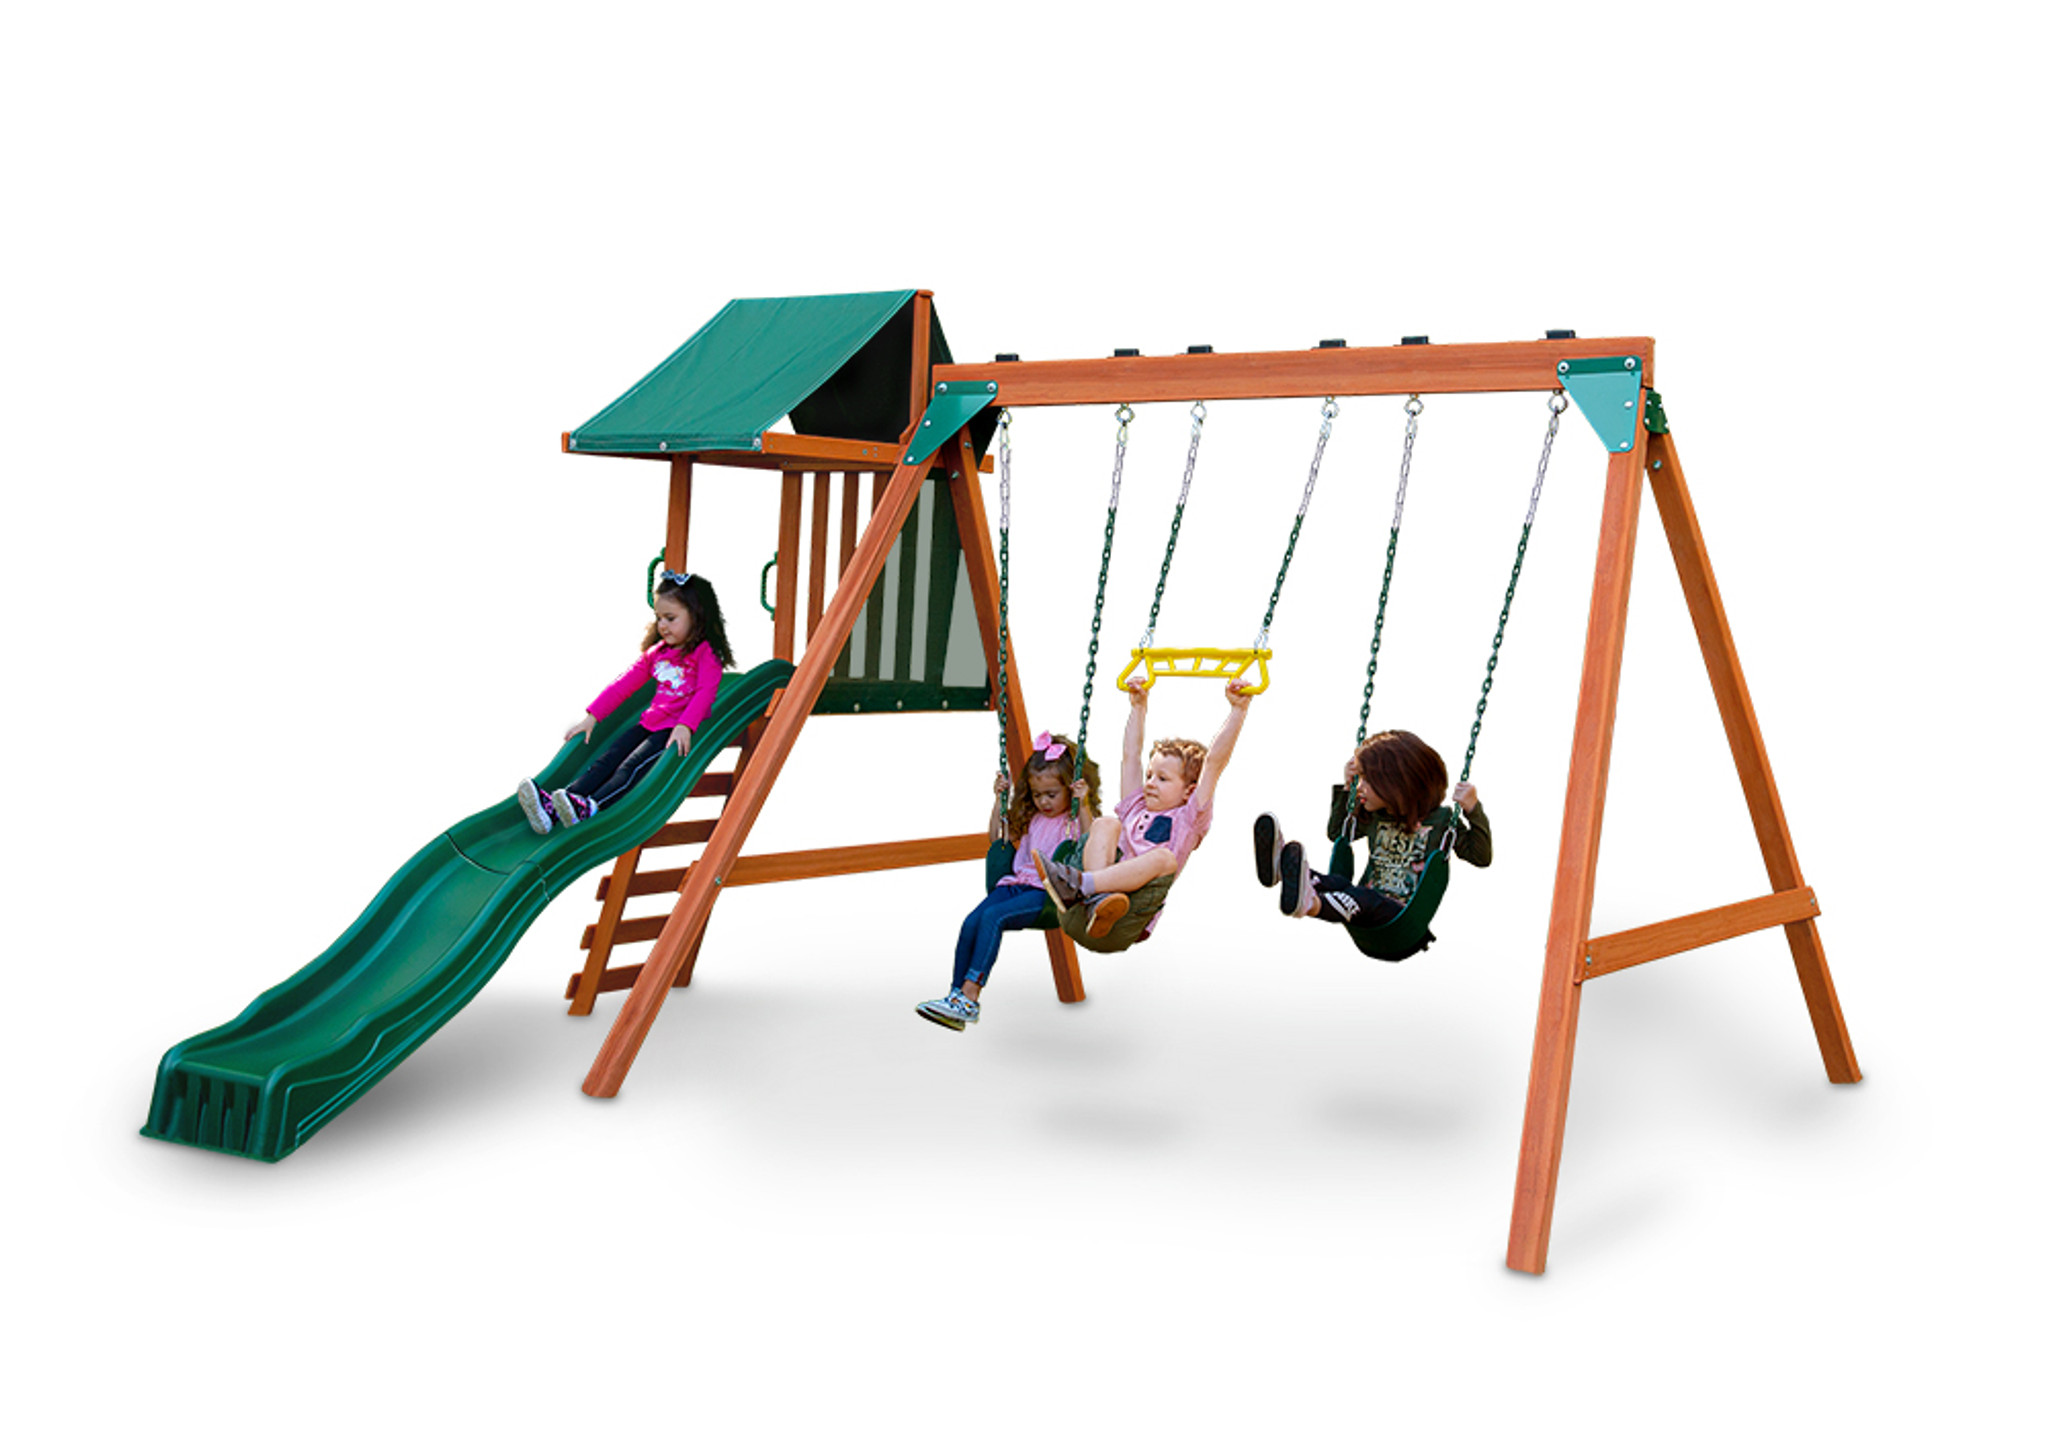 Studio view of Ranger Plus play set from PlayNation Play Systems.